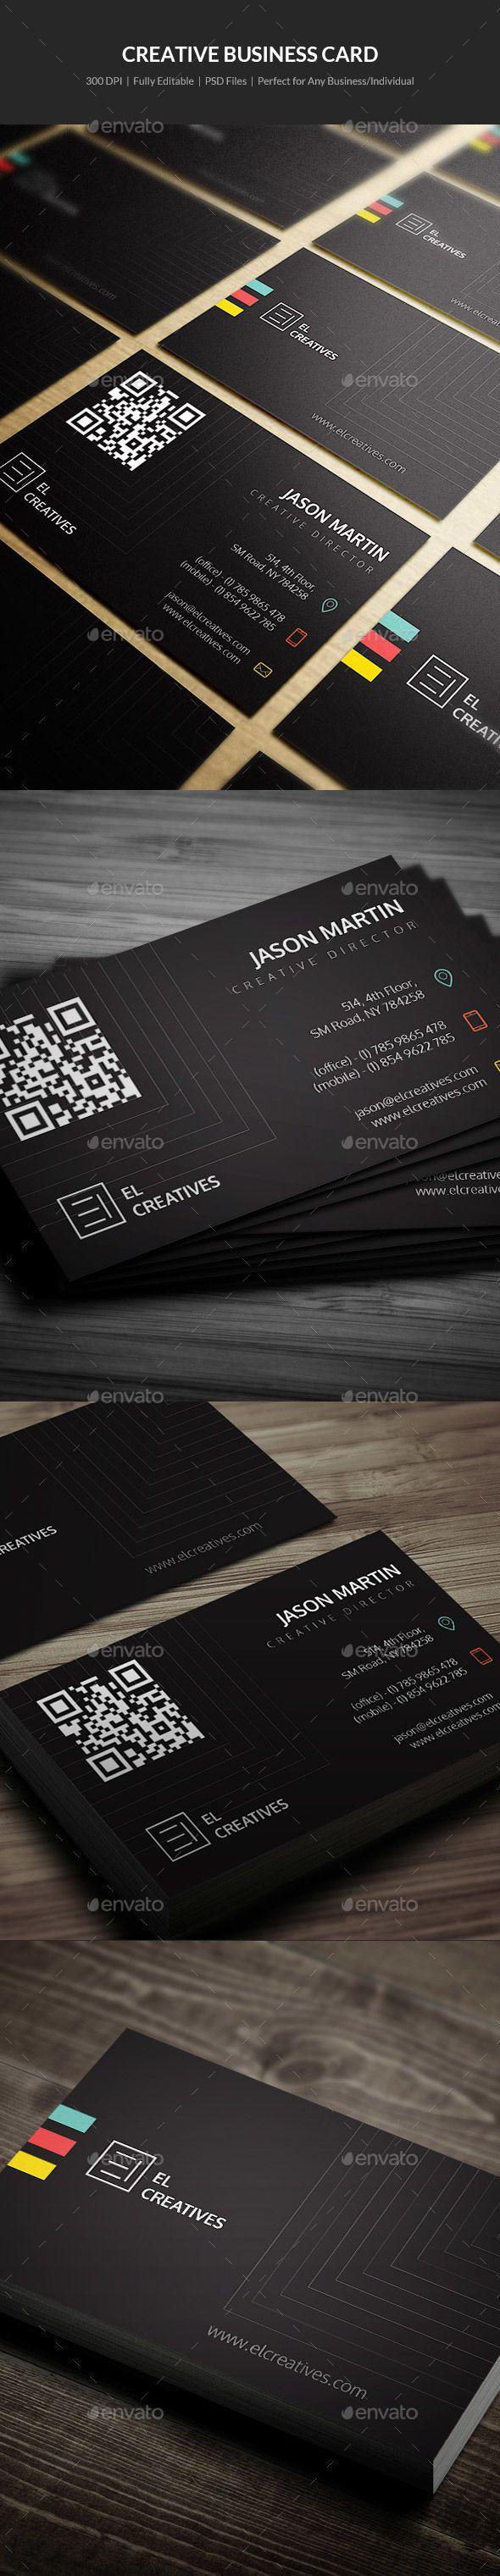 Creative Business Card - 25 | Business cards, Business and Creative